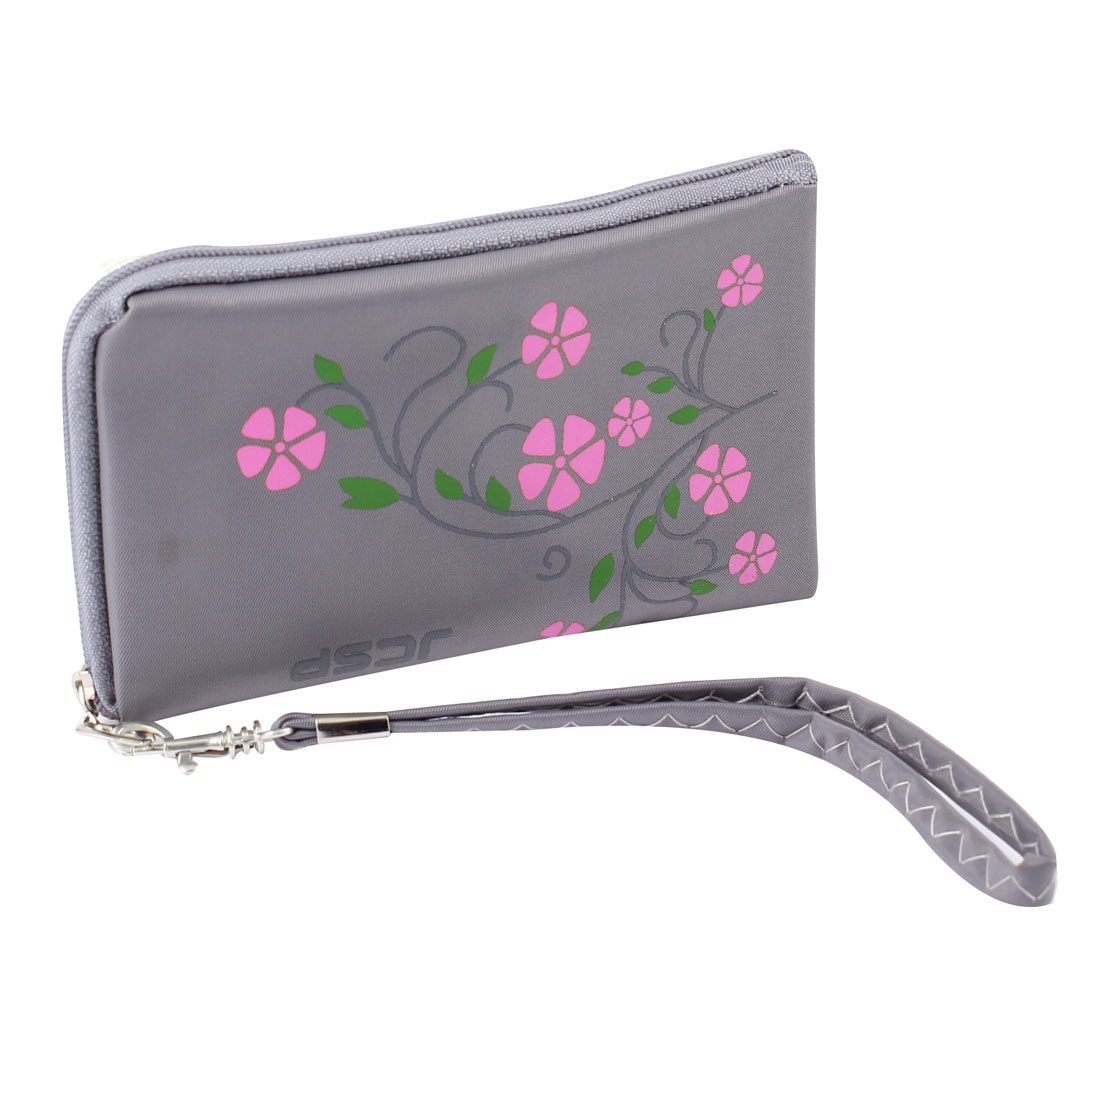 Unique Bargains L Shaped Zipper 1 Pocket Gray Wrist Purse Bag Purple w String for Moblie Phone